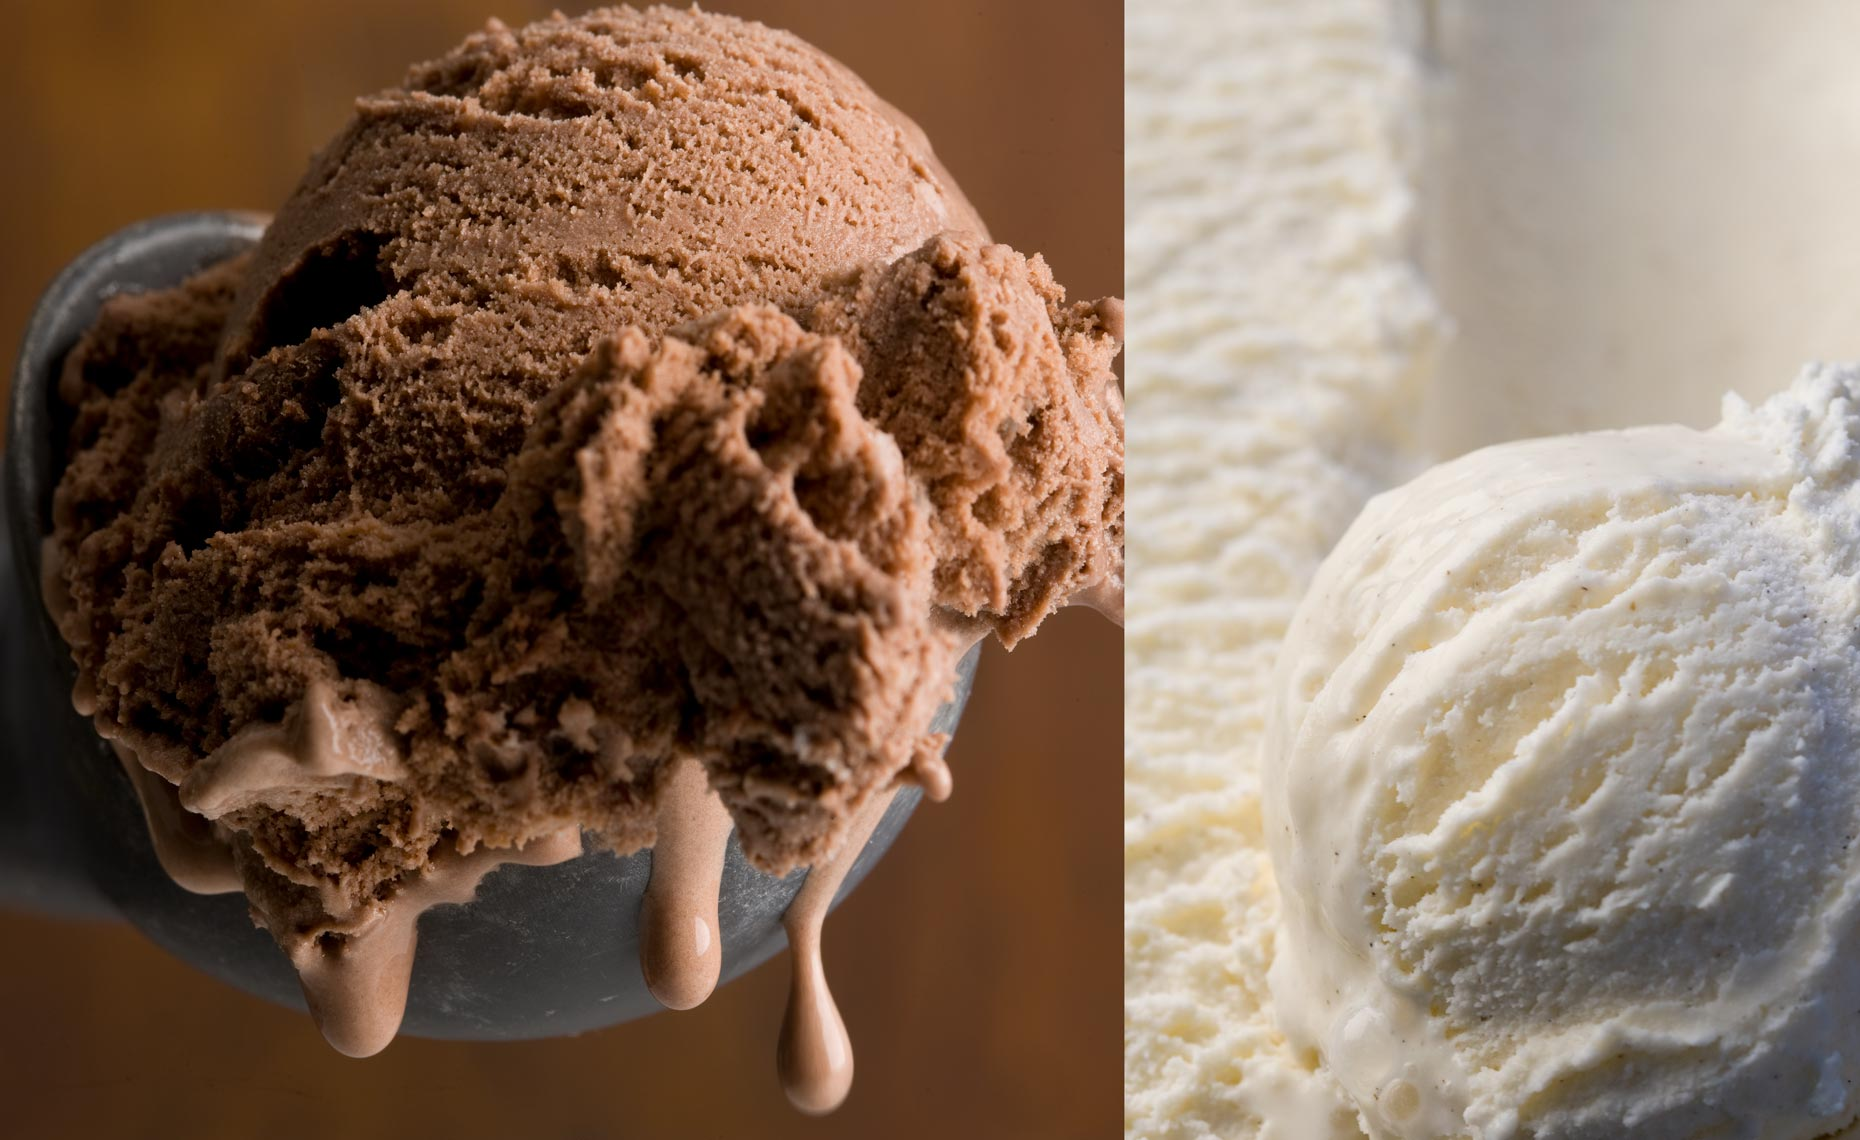 baltimore-food-photographers-ice-cream-20